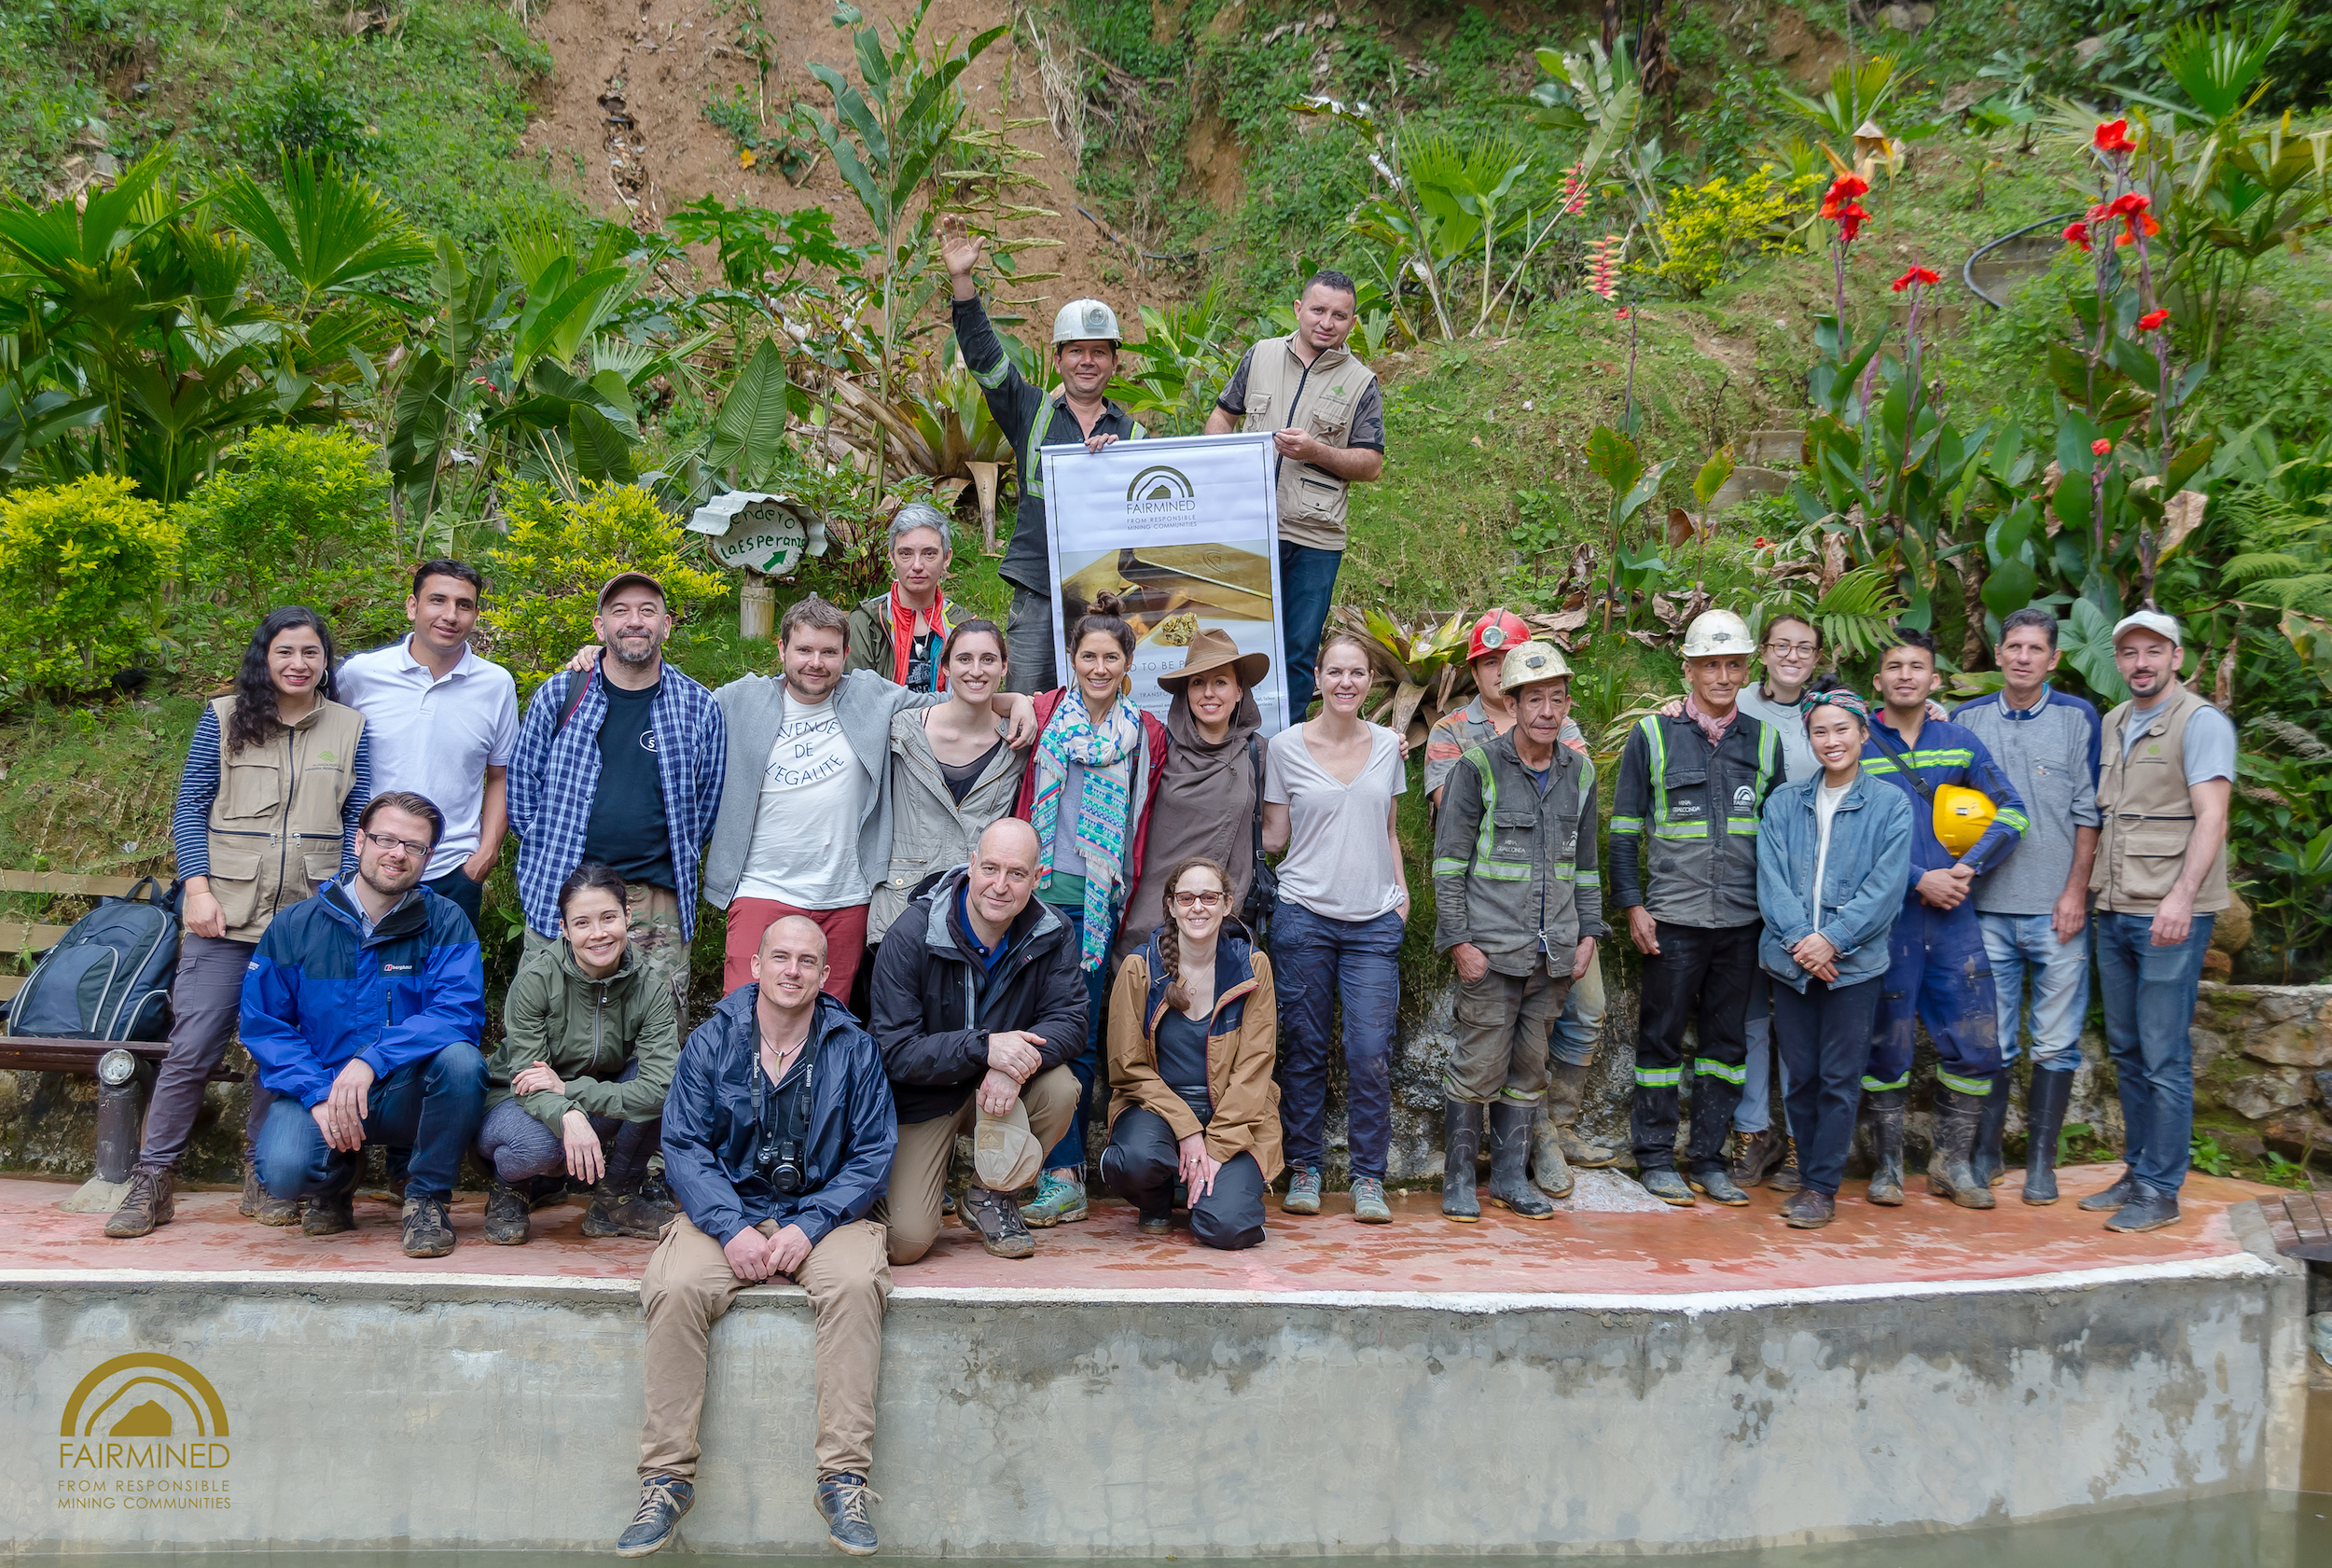 Group portrait Taken at Gualconda in March 2018. Group includes: Fairmined staff, jewelers, Consultants, Miners, Regional Environmental Authority. seven Different countries ARE REPRESENTED Photo: Fairmined